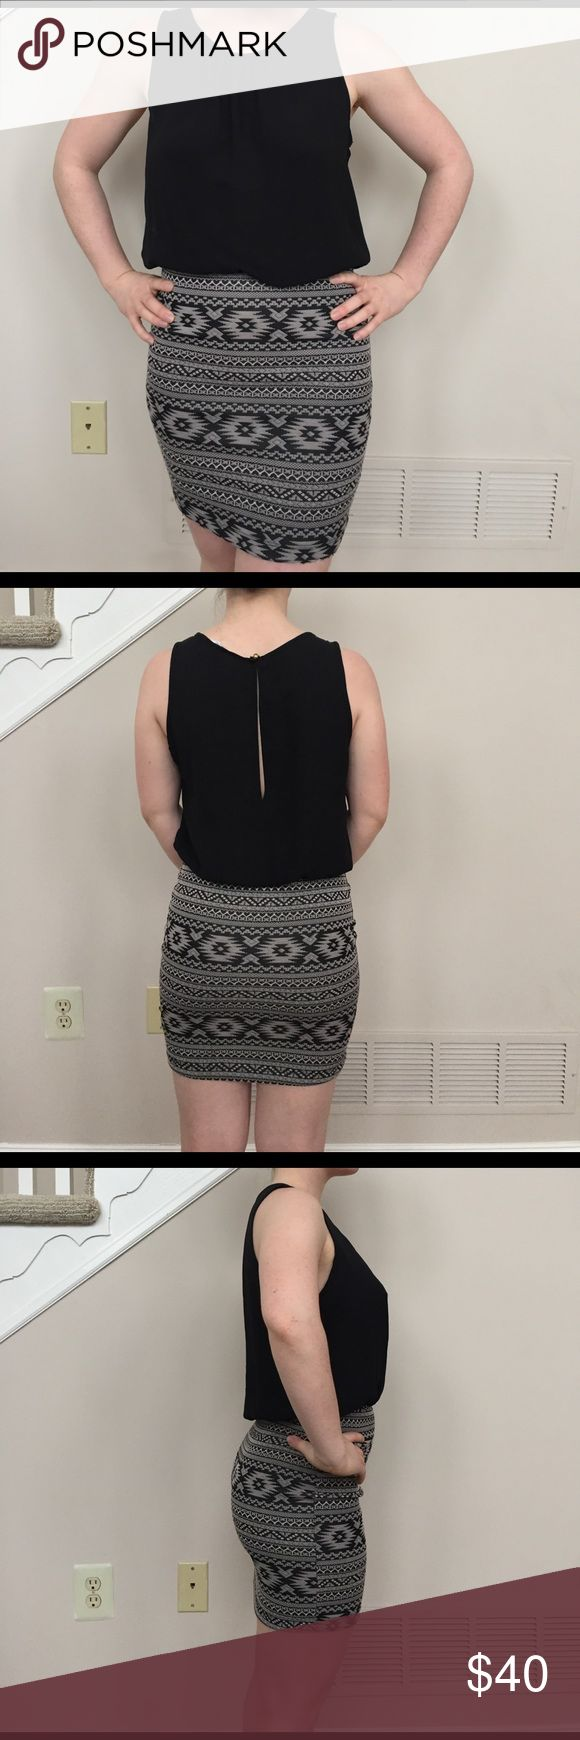 """A classy short dress A mid thigh length dress, with the illusion of a skirt/blouse combo. Black flowy top half, tight skirt with woven-in tan Aztec pattern bottom half. Skirt is stretchy and good quality material. Top is thin nylon material but not see-through. back has small teardrop opening that is clasped together with gold loop button. (Model is 4'11"""" and 110lbs) voxx Dresses Mini"""